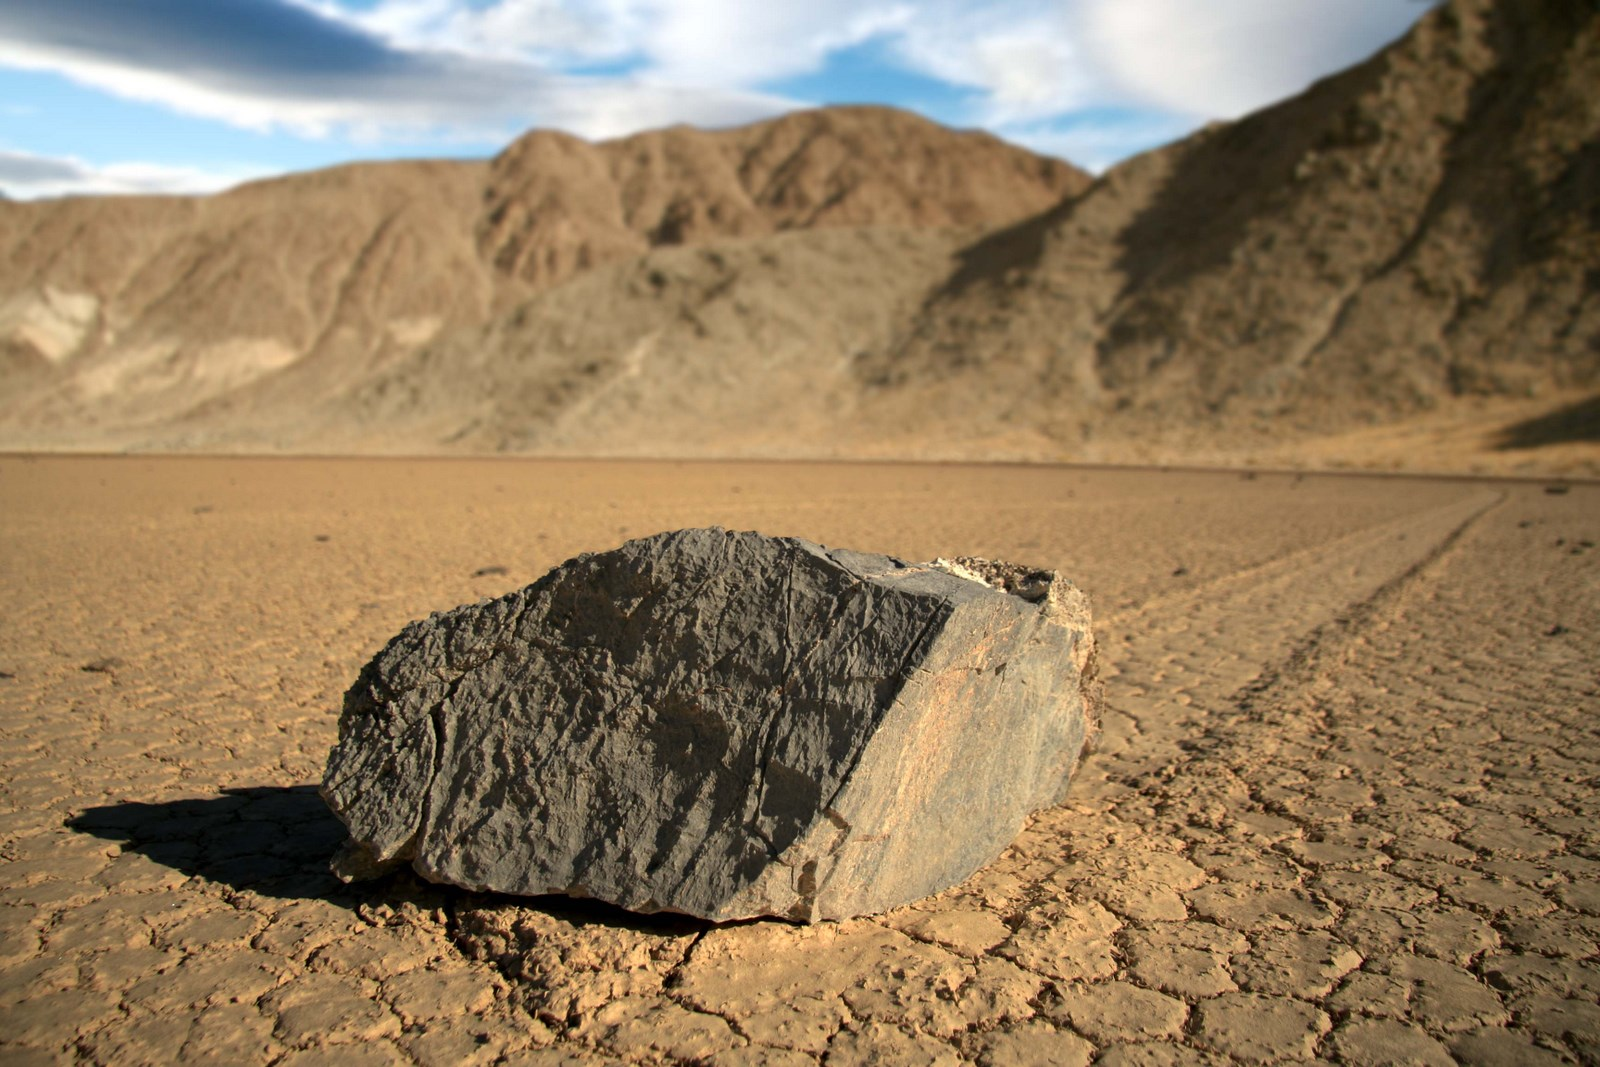 http://upload.wikimedia.org/wikipedia/commons/c/c7/Racetrack_Playa_(Pirate_Scott).jpg